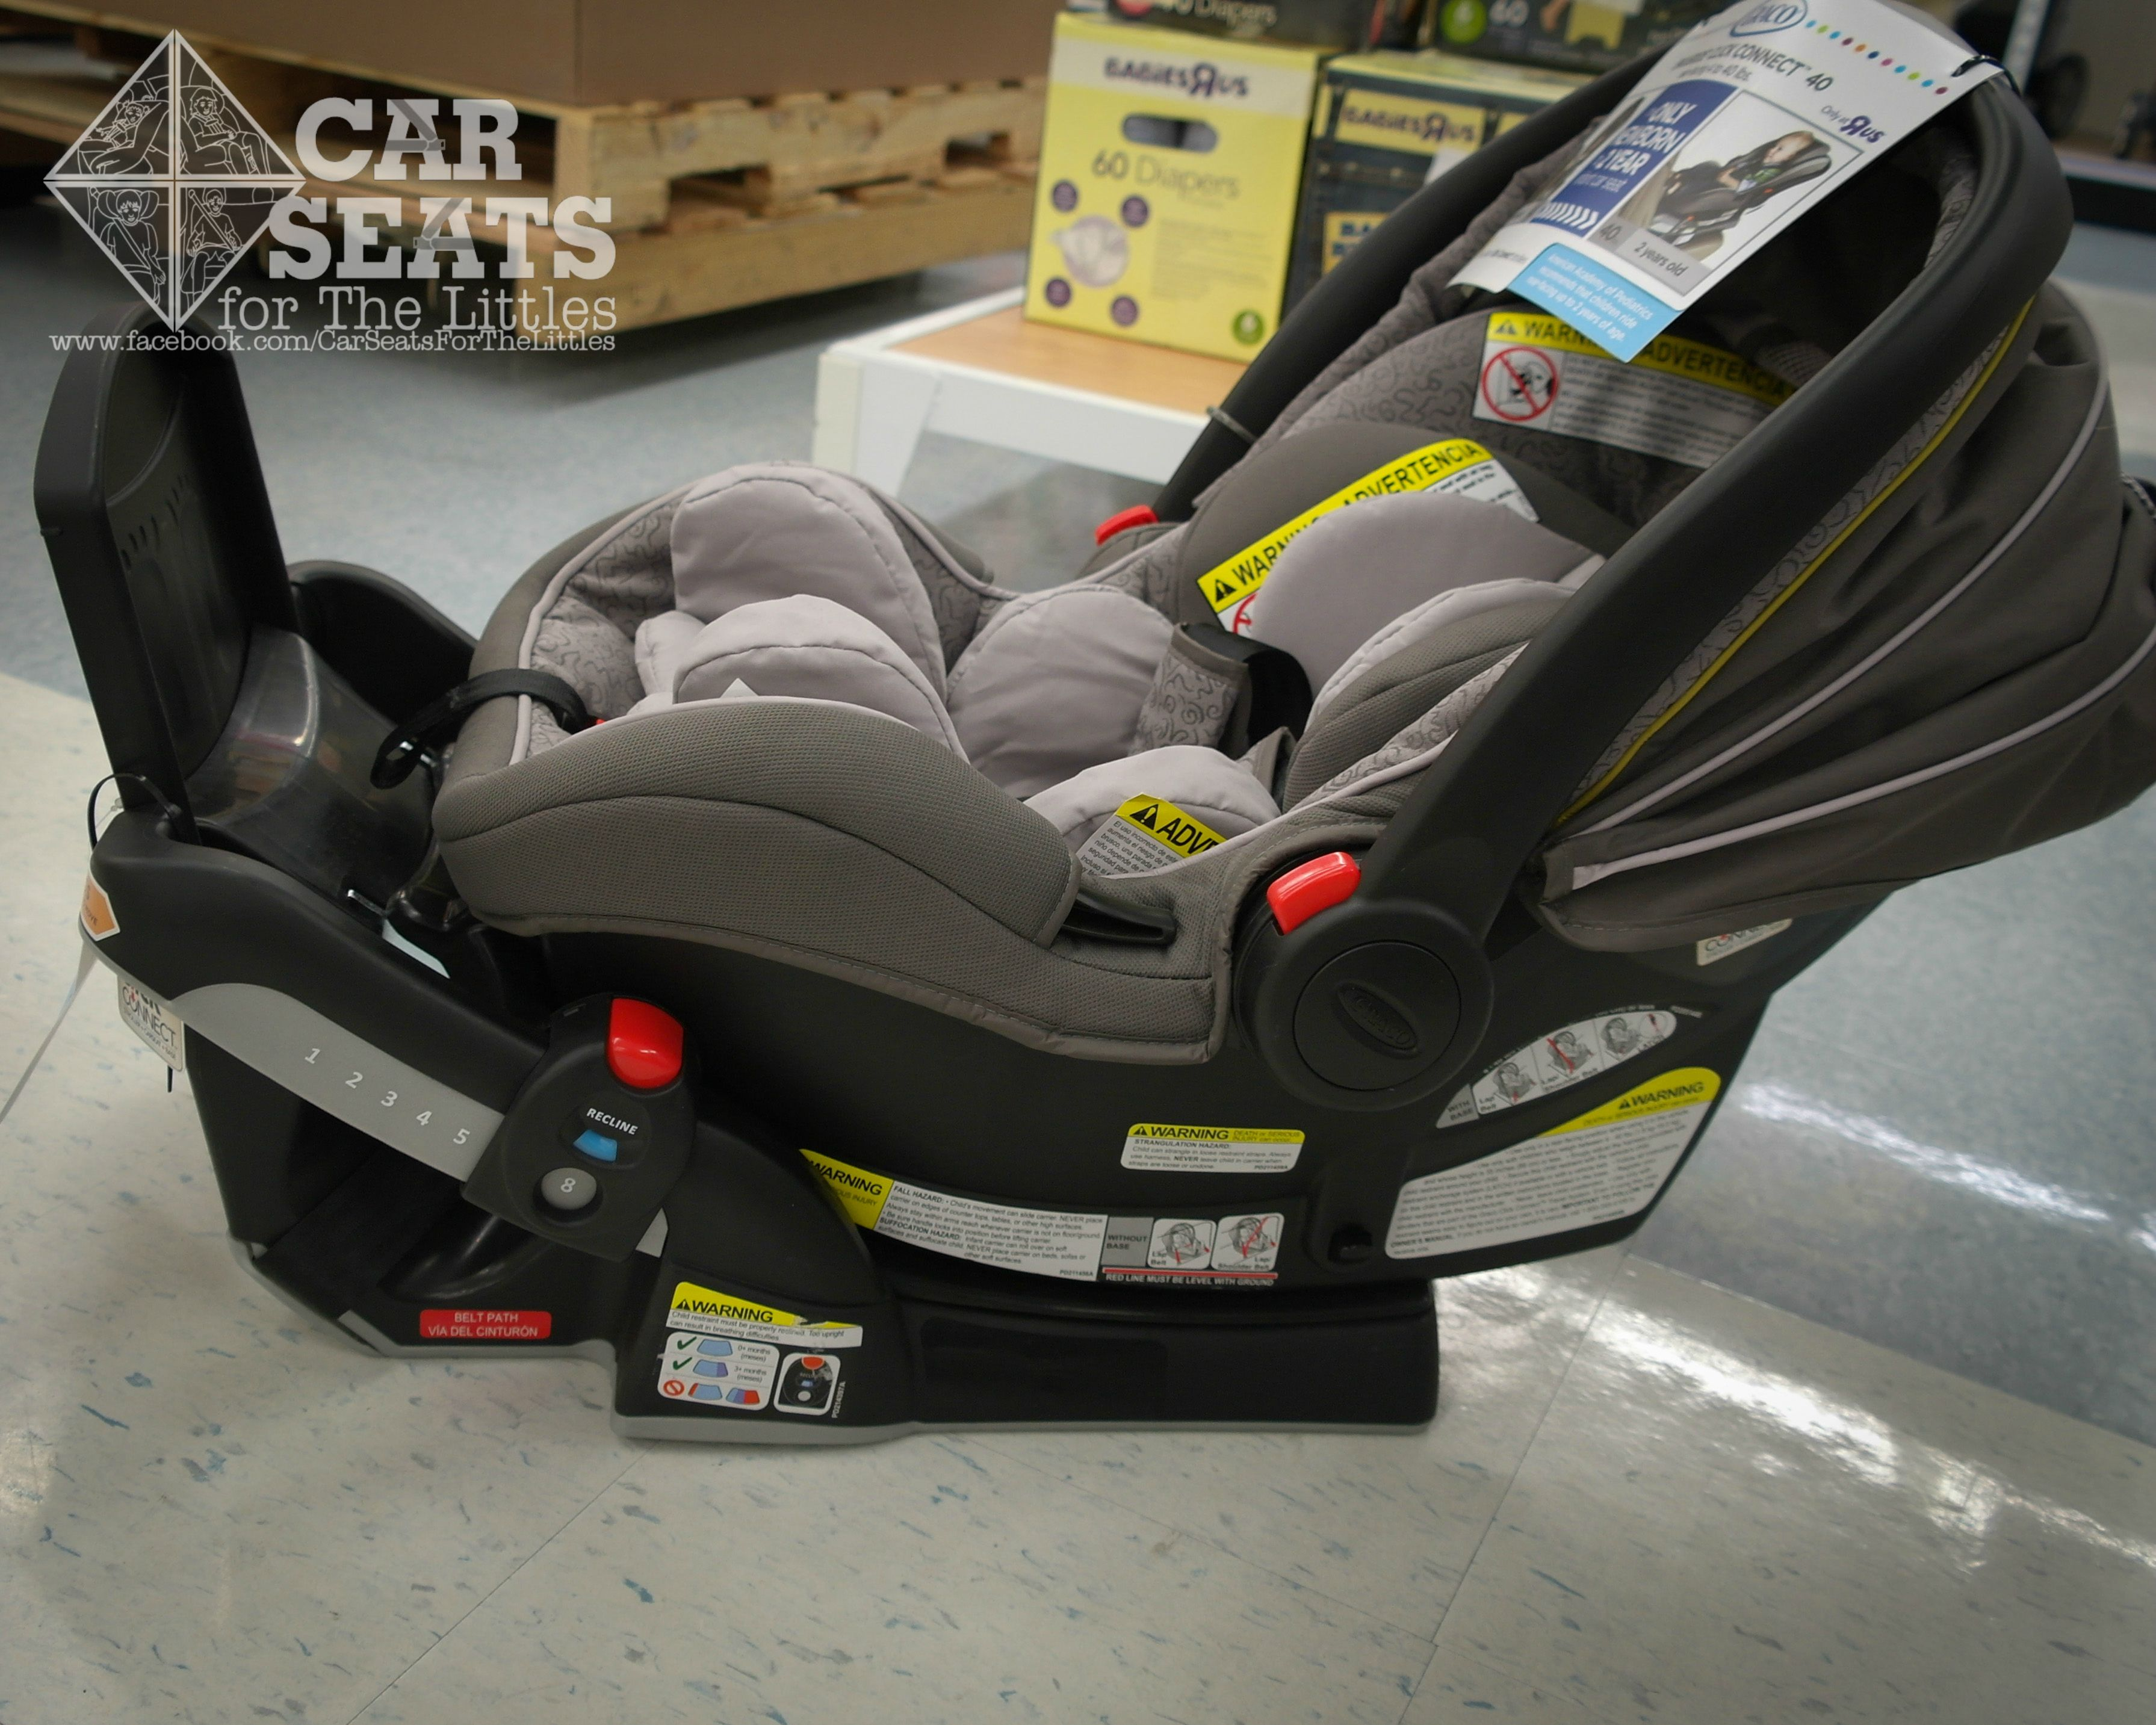 Comparison of Graco SnugRide Seats. Carrier weight of 7.5 lbs ...